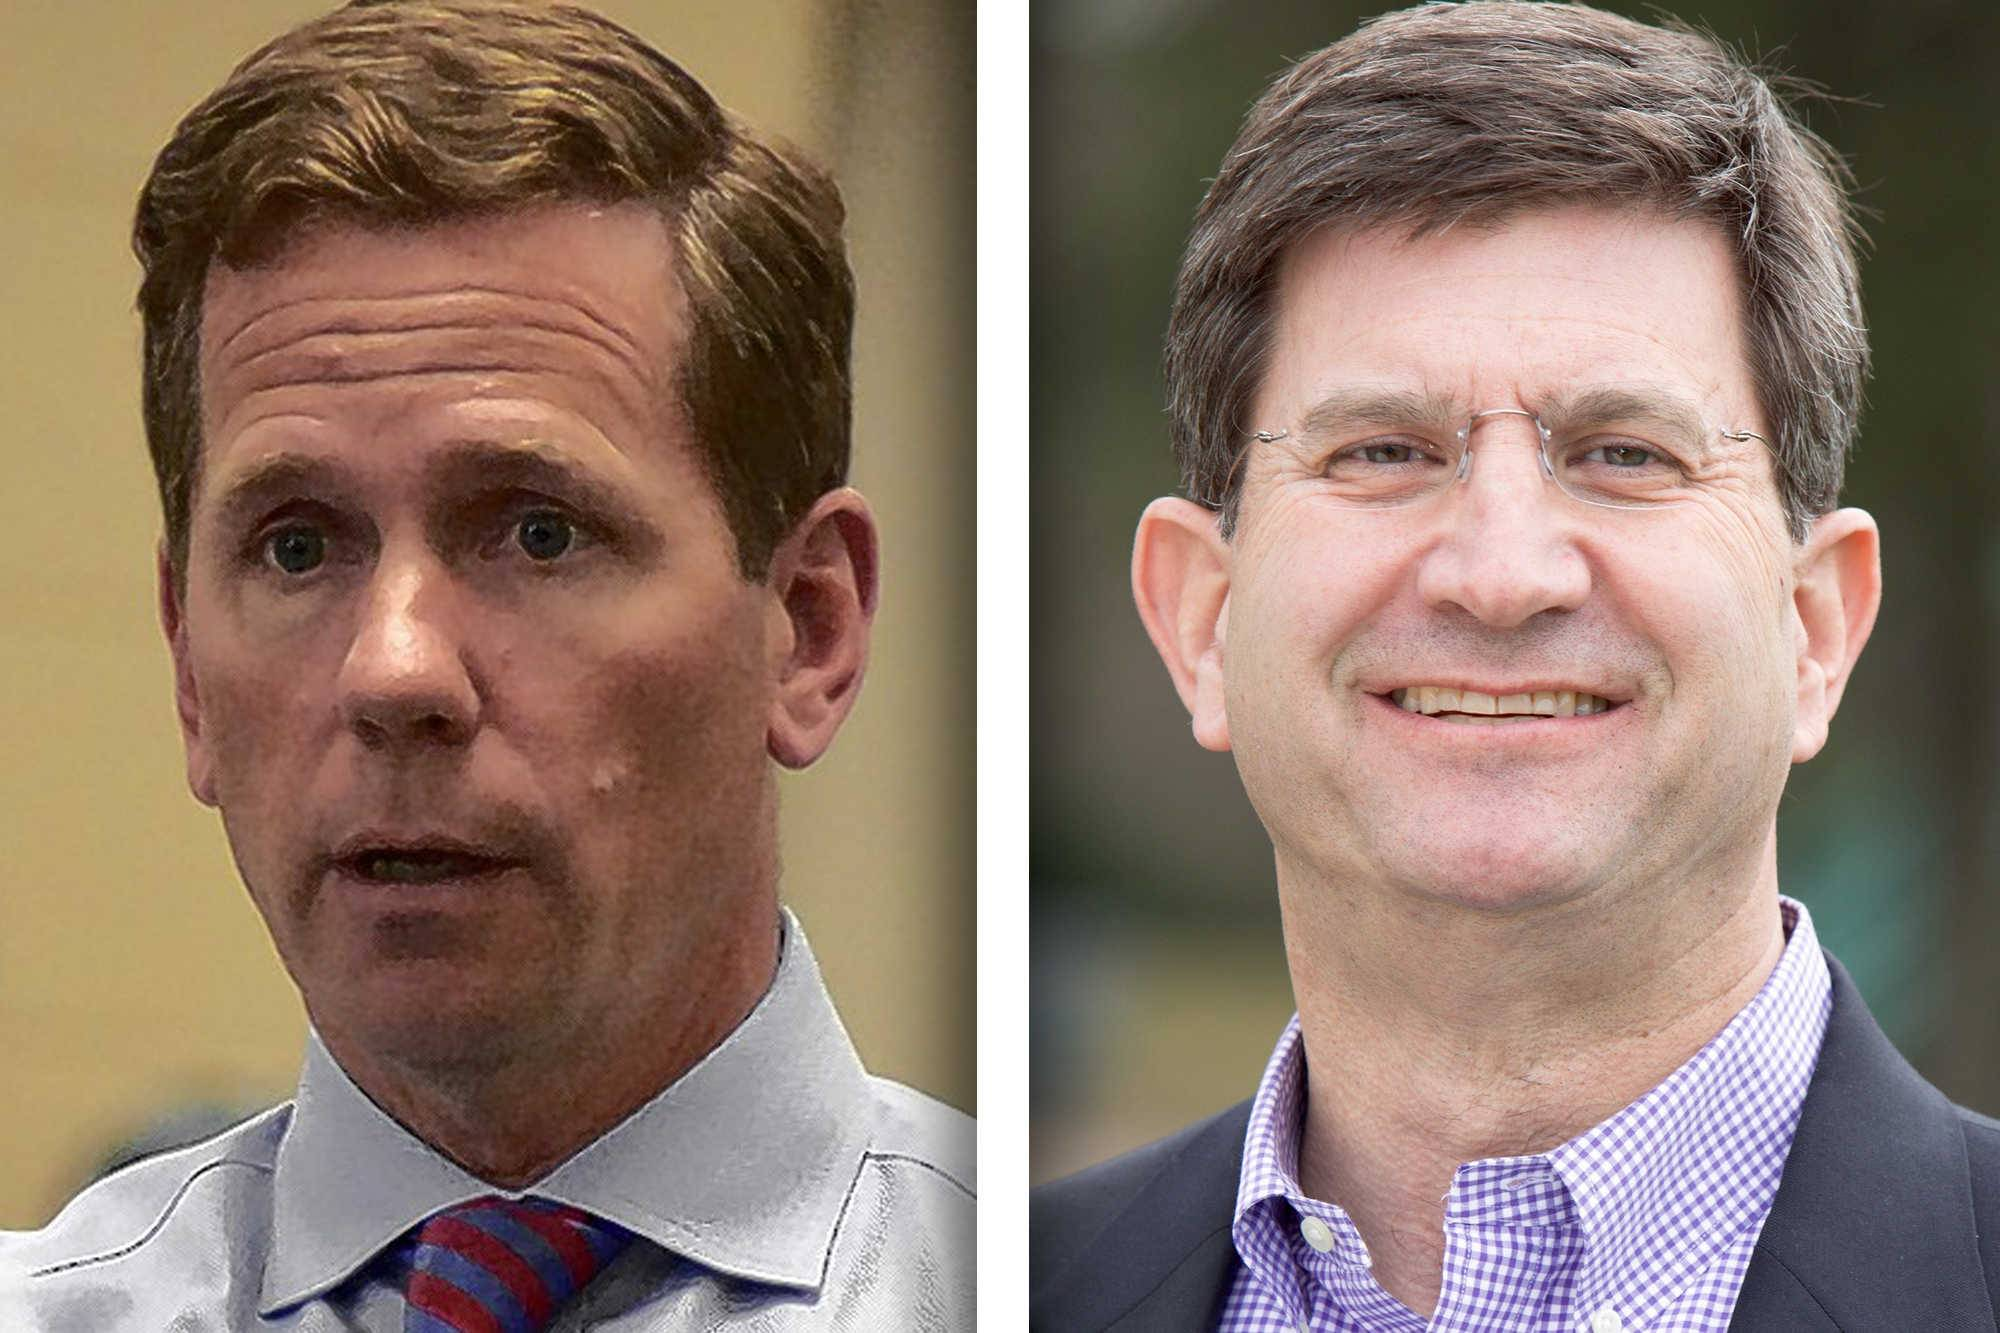 Republican Bob Dold, left, and Democrat Brad Schneider are the candidates for Illinois' 10th District seat in the U.S. House.